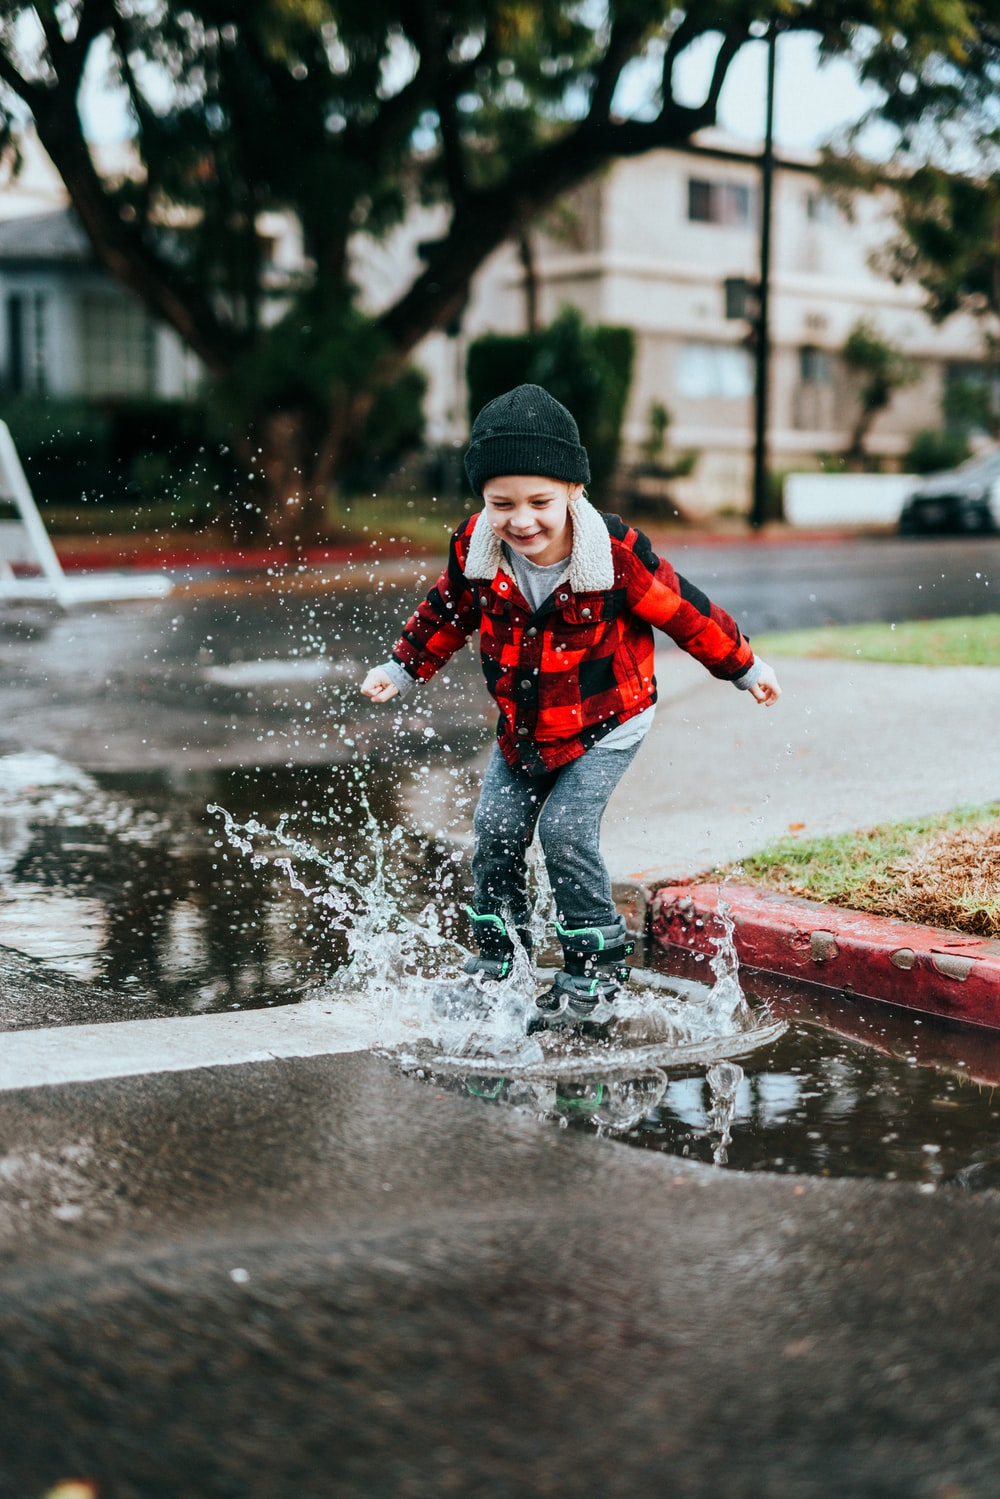 boy in red and black jacket and black knit cap running on wet road during daytime